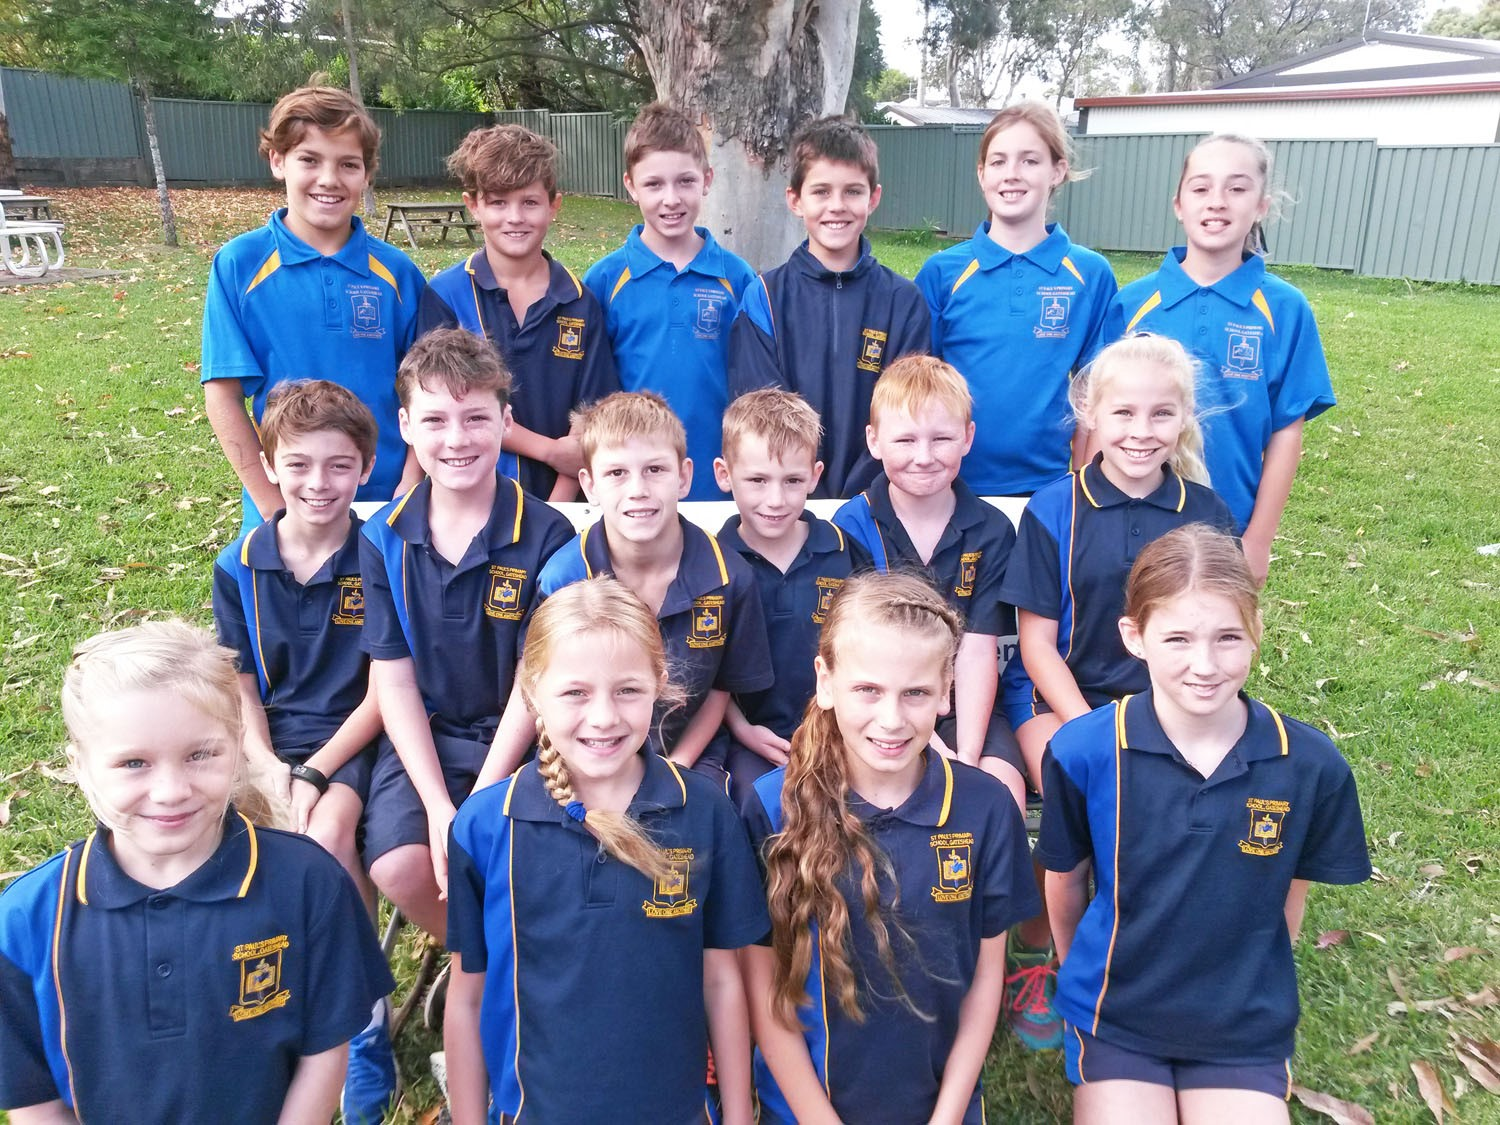 Image:Success at diocesan cross country events